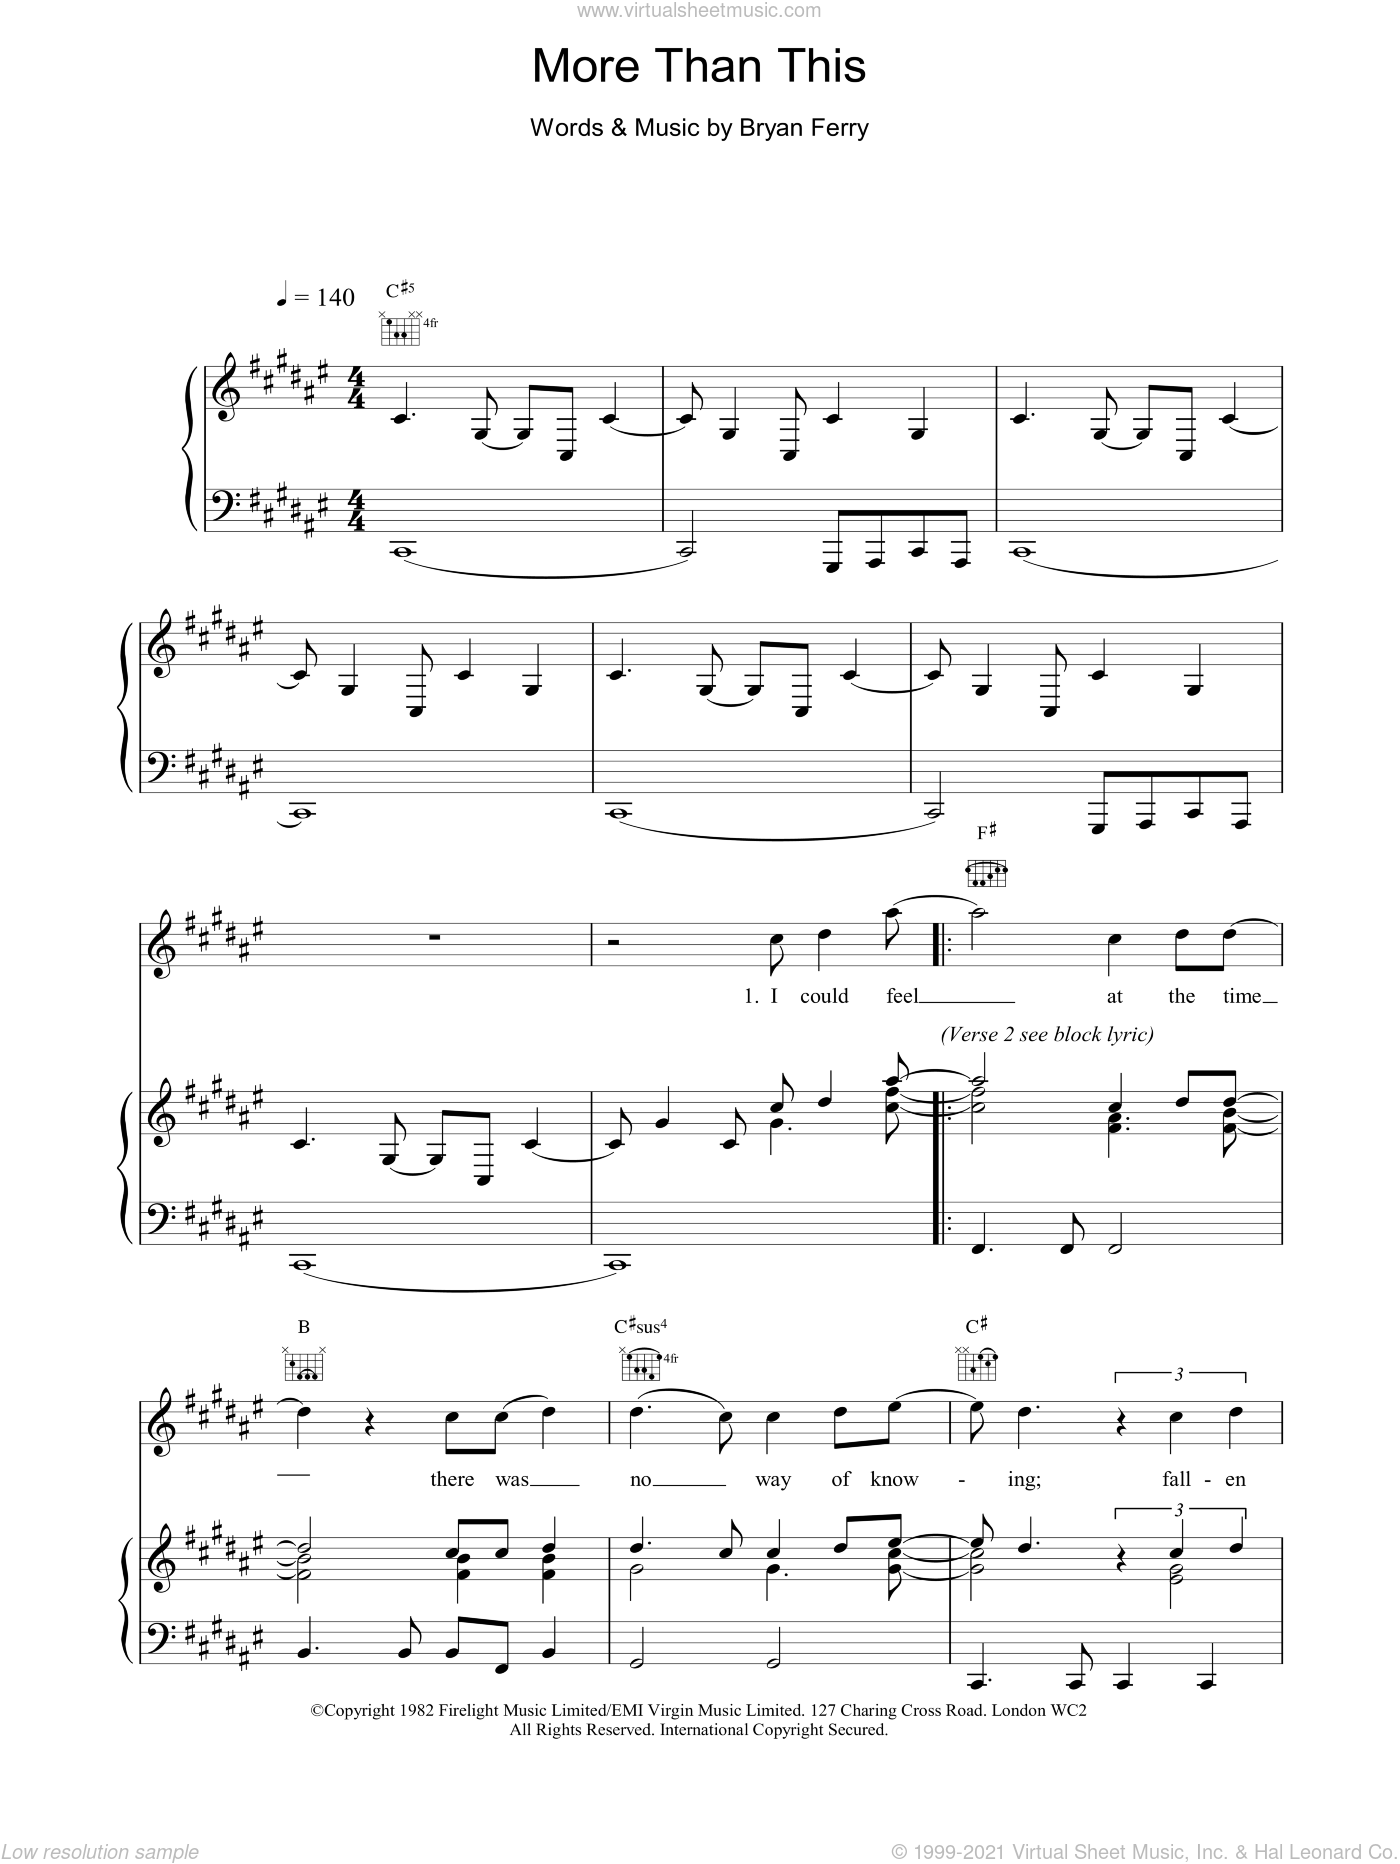 More Than This sheet music for voice, piano or guitar by Bryan Ferry and Roxy Music. Score Image Preview.